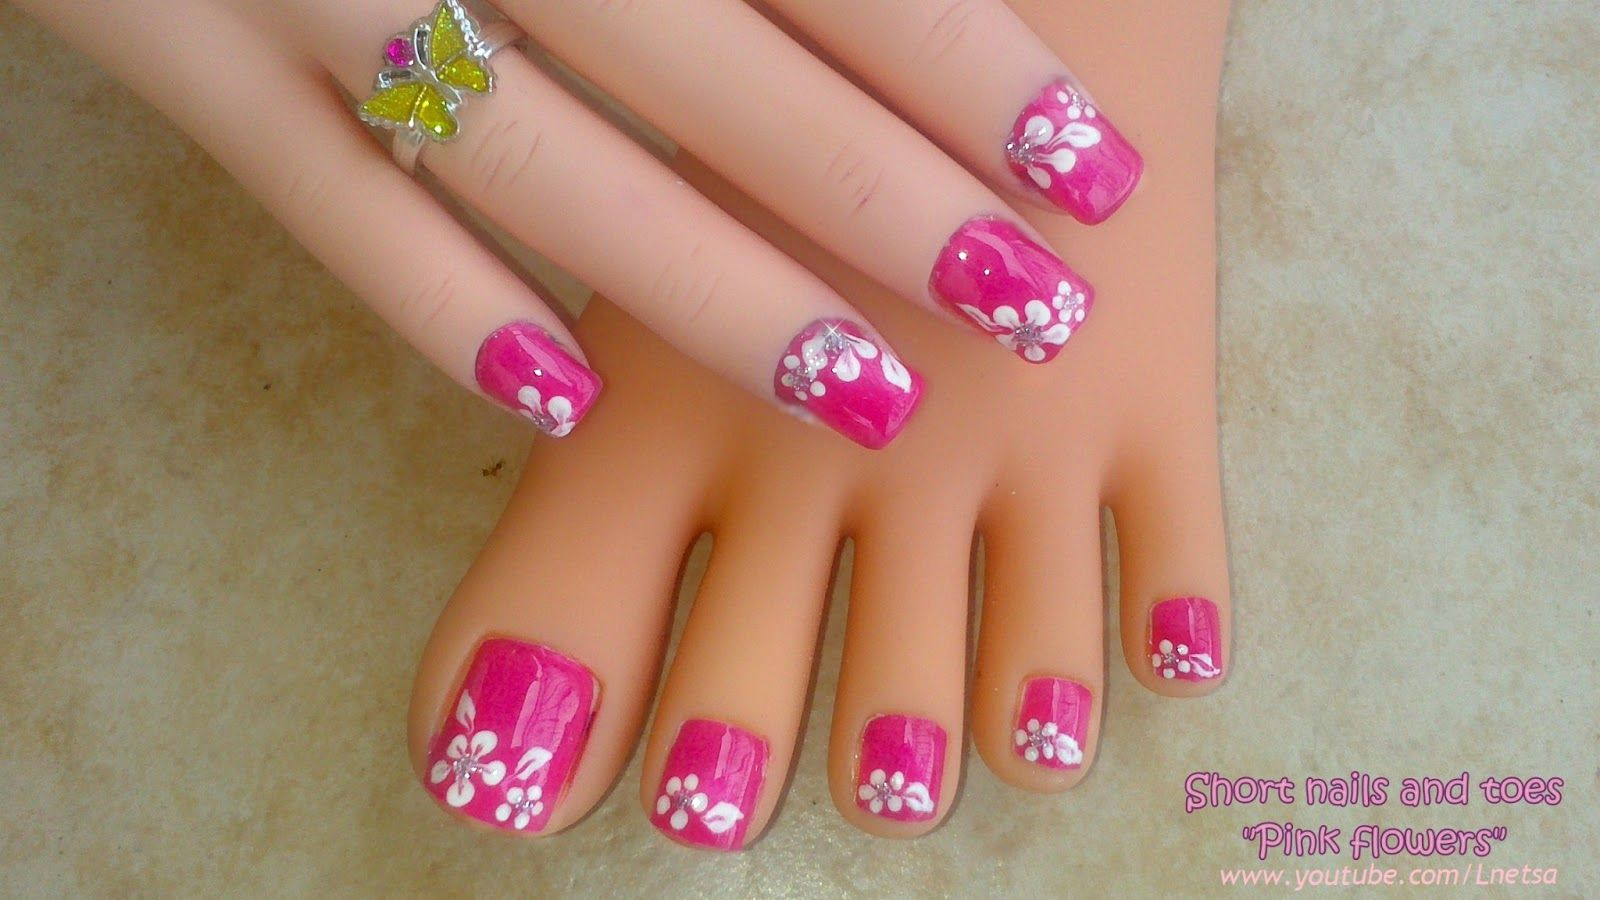 Flower toe nail designs | Nail Designs on blog online | Nail Art ...